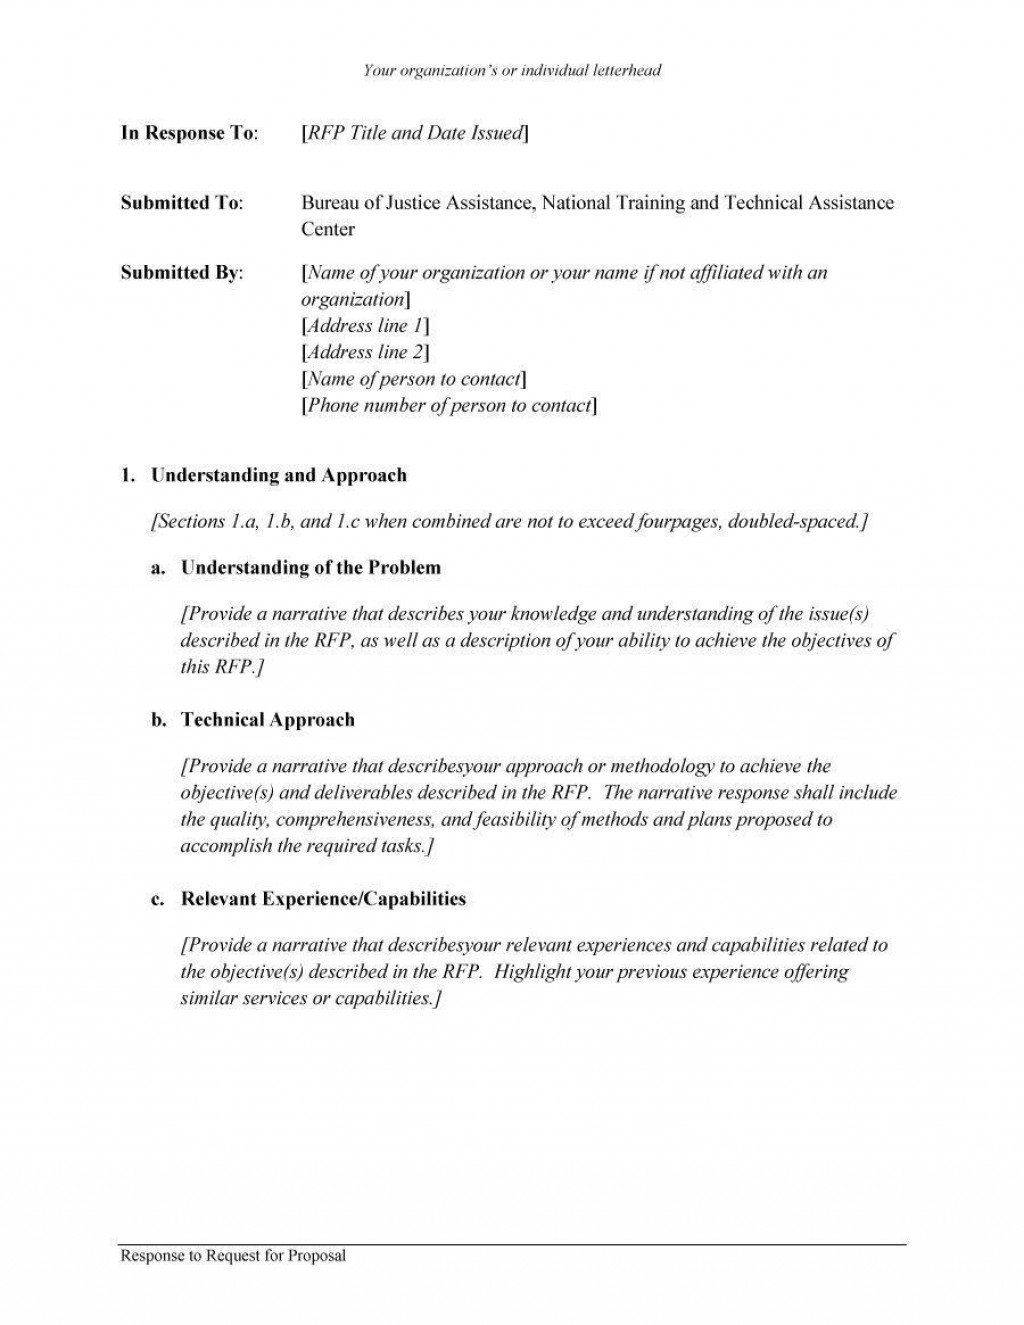 001 Unique Request For Proposal Response Template Free Picture Large